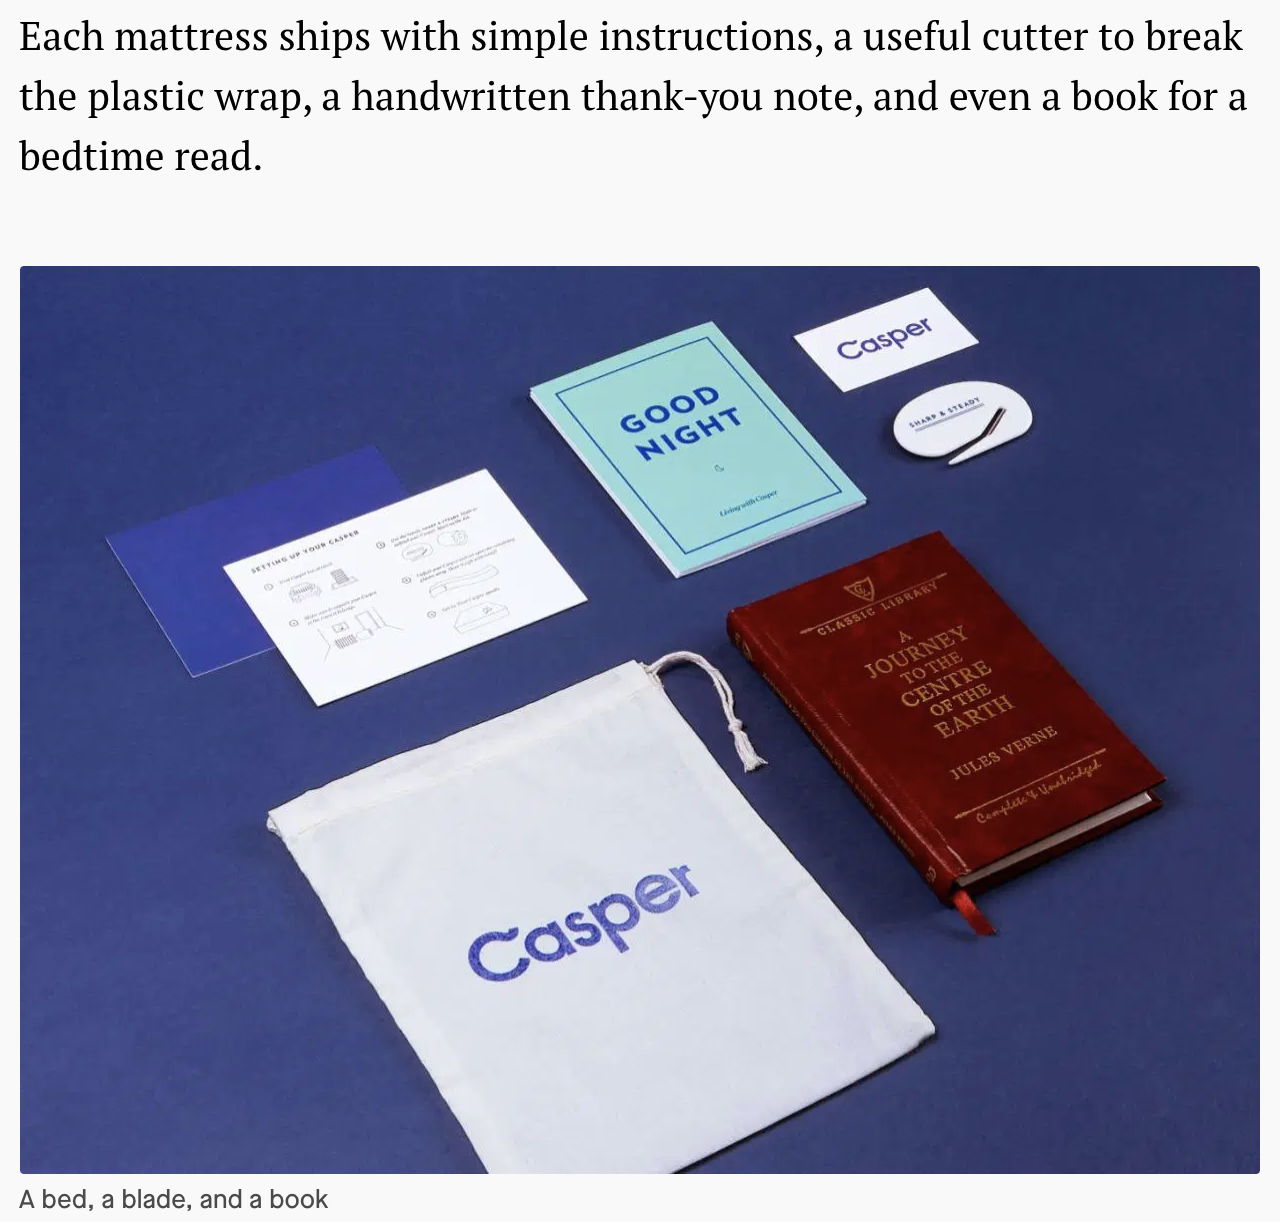 casper hand-written notes